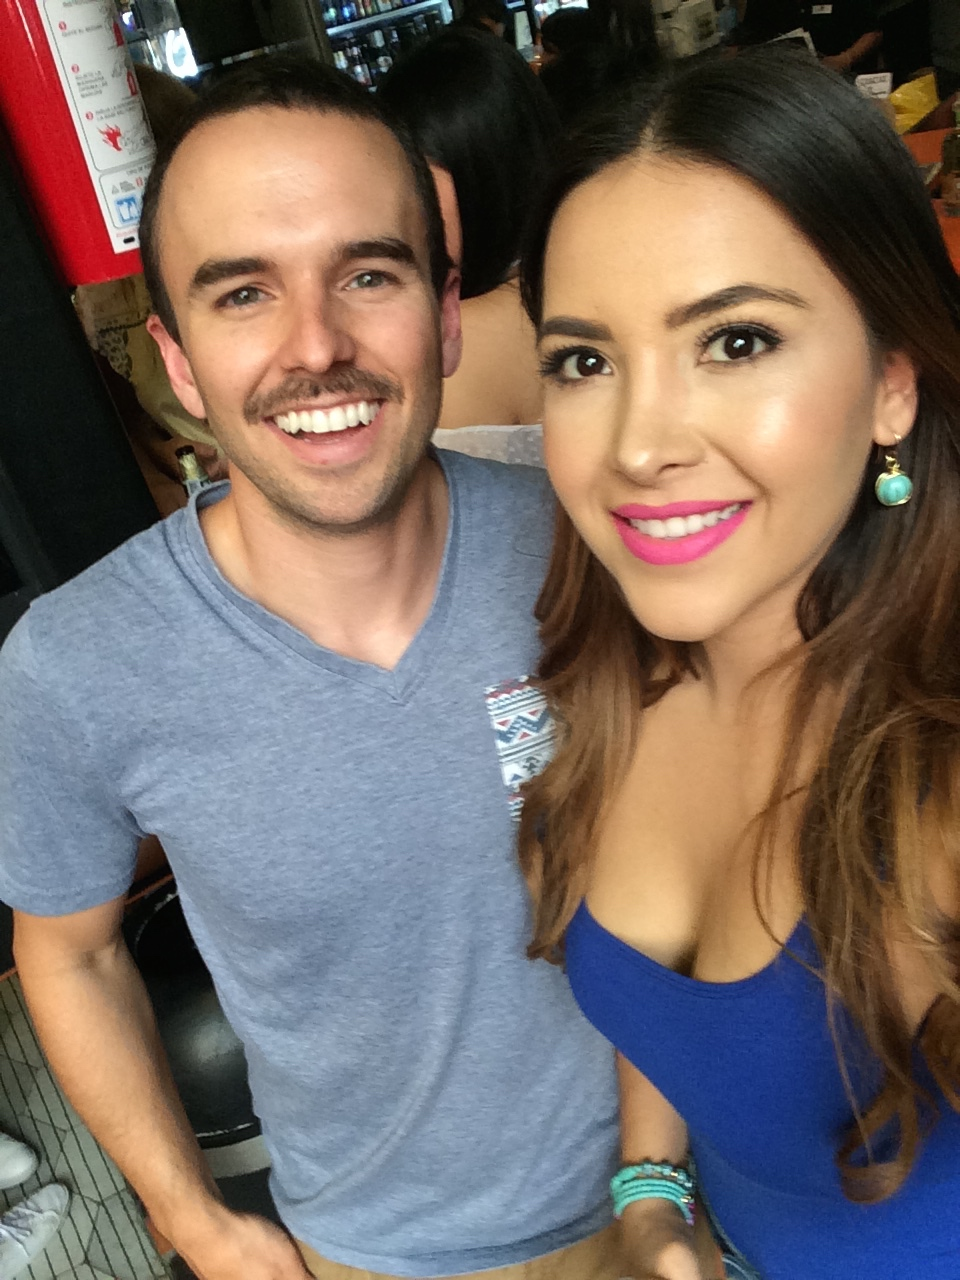 Aly Villegas and I after the morning shoot in Mexico City. My Mexican mustache game could use some upgrades.